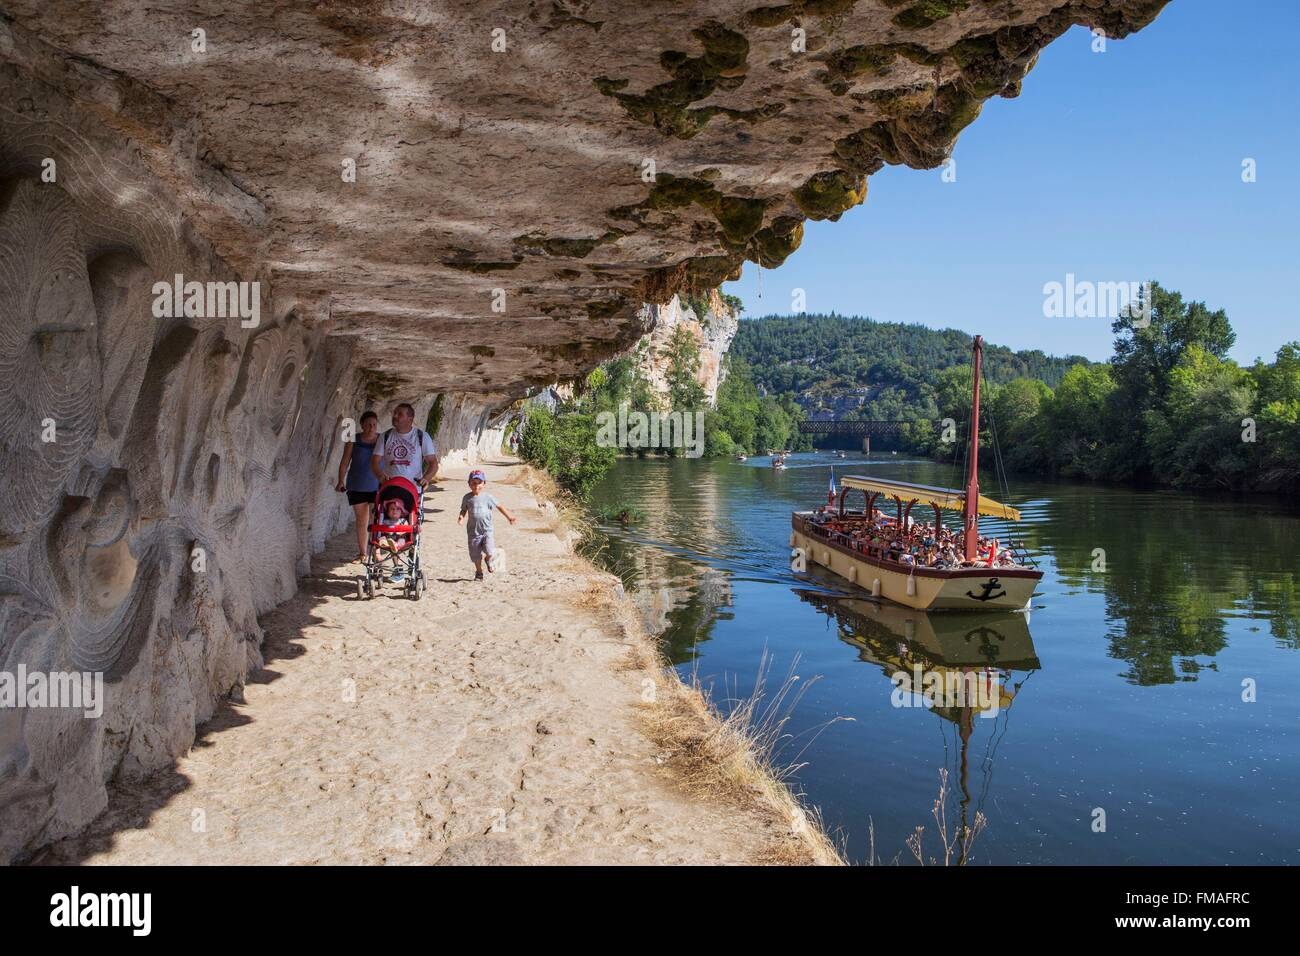 France, Lot, between Saint Cirq Lapopie and Bouzies, the Ganil towpath along the Lot river and the bas relief by - Stock Image